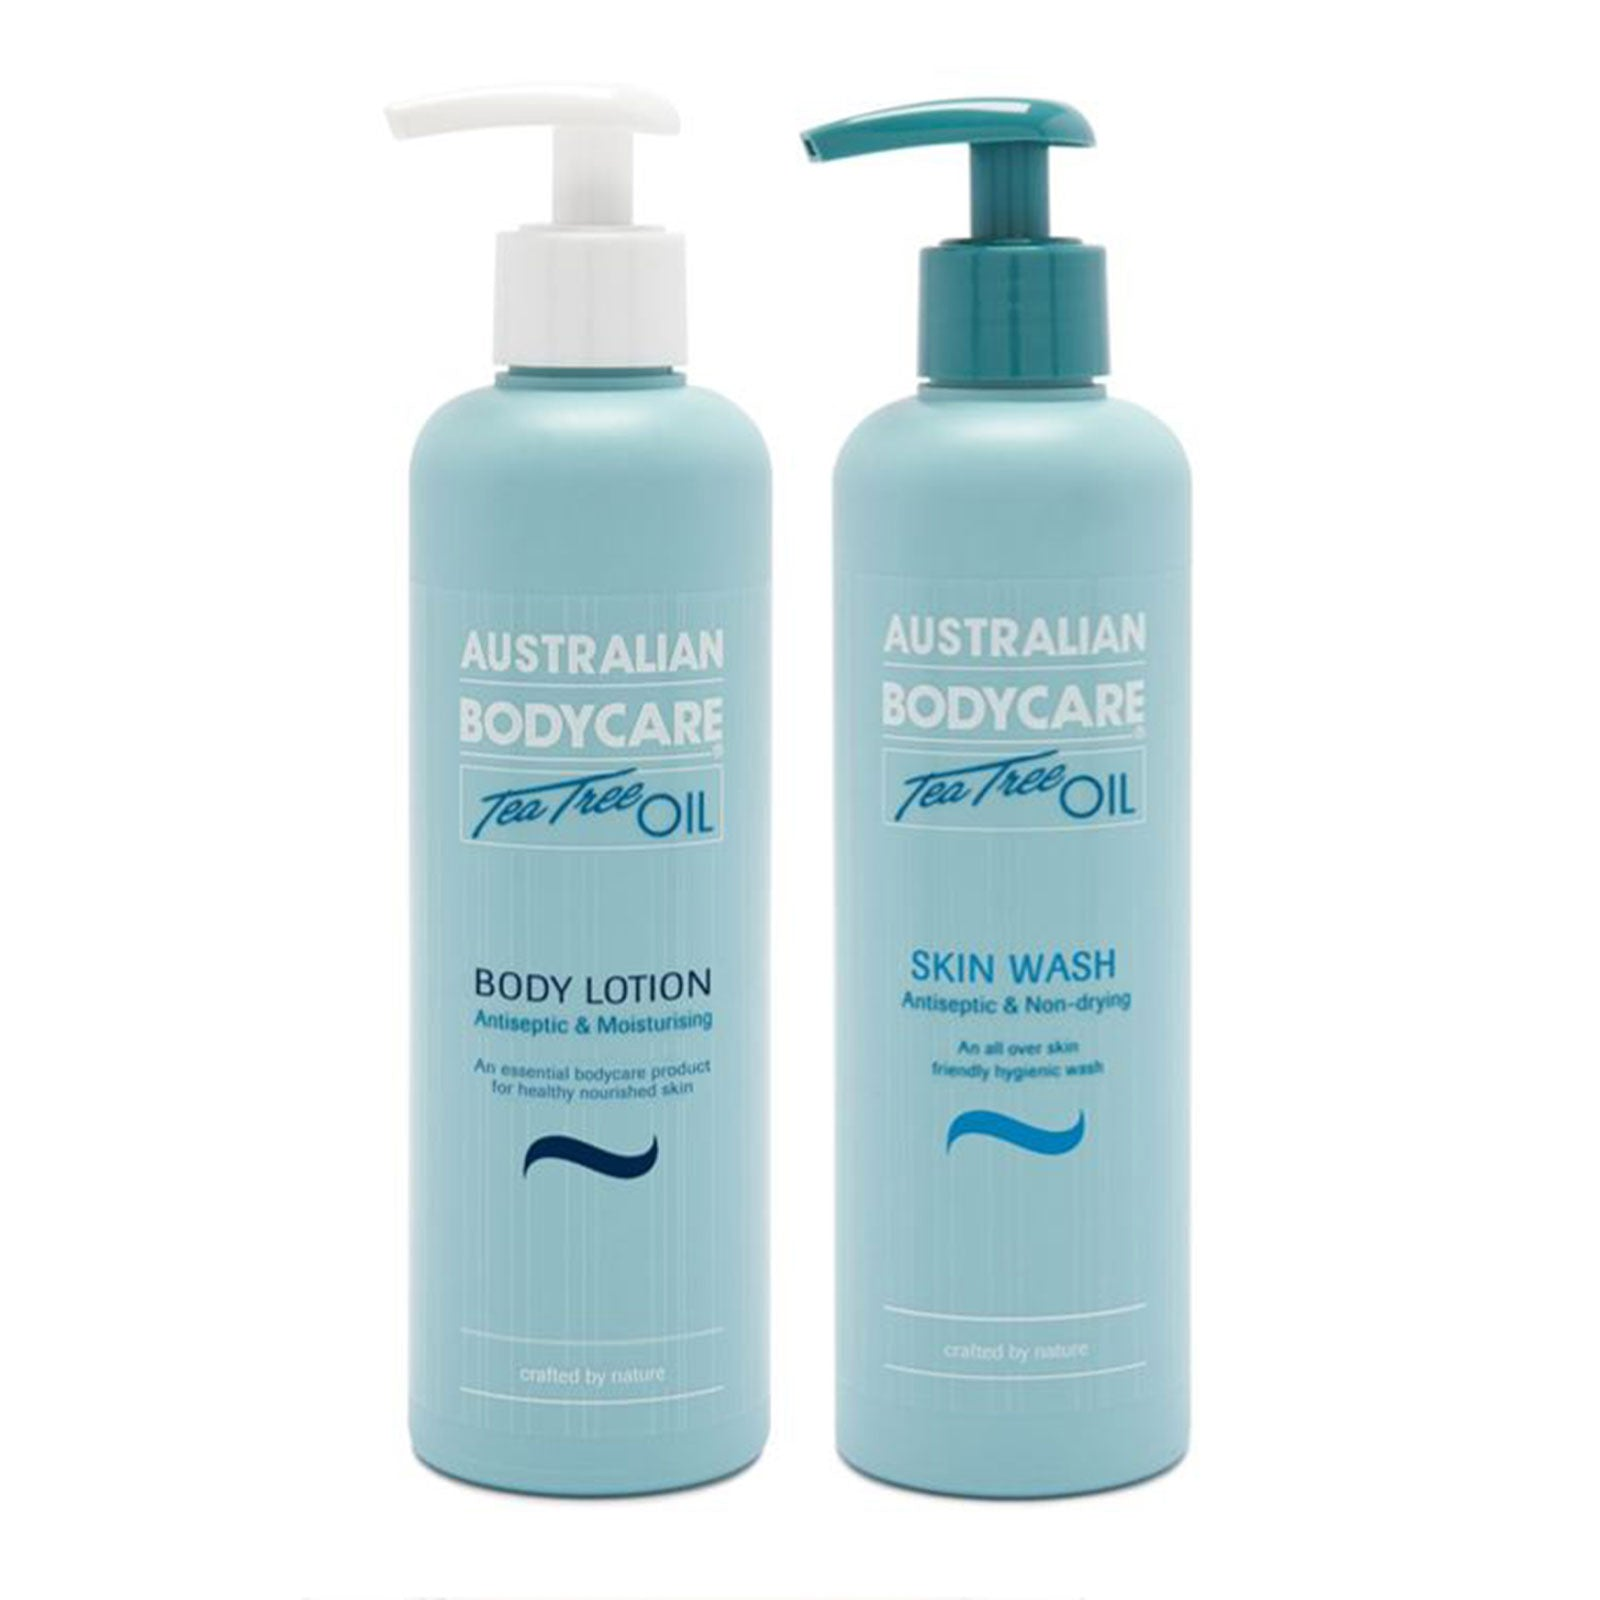 Australian Bodycare Body Lotion 250ml + Free Skin Wash 250ml